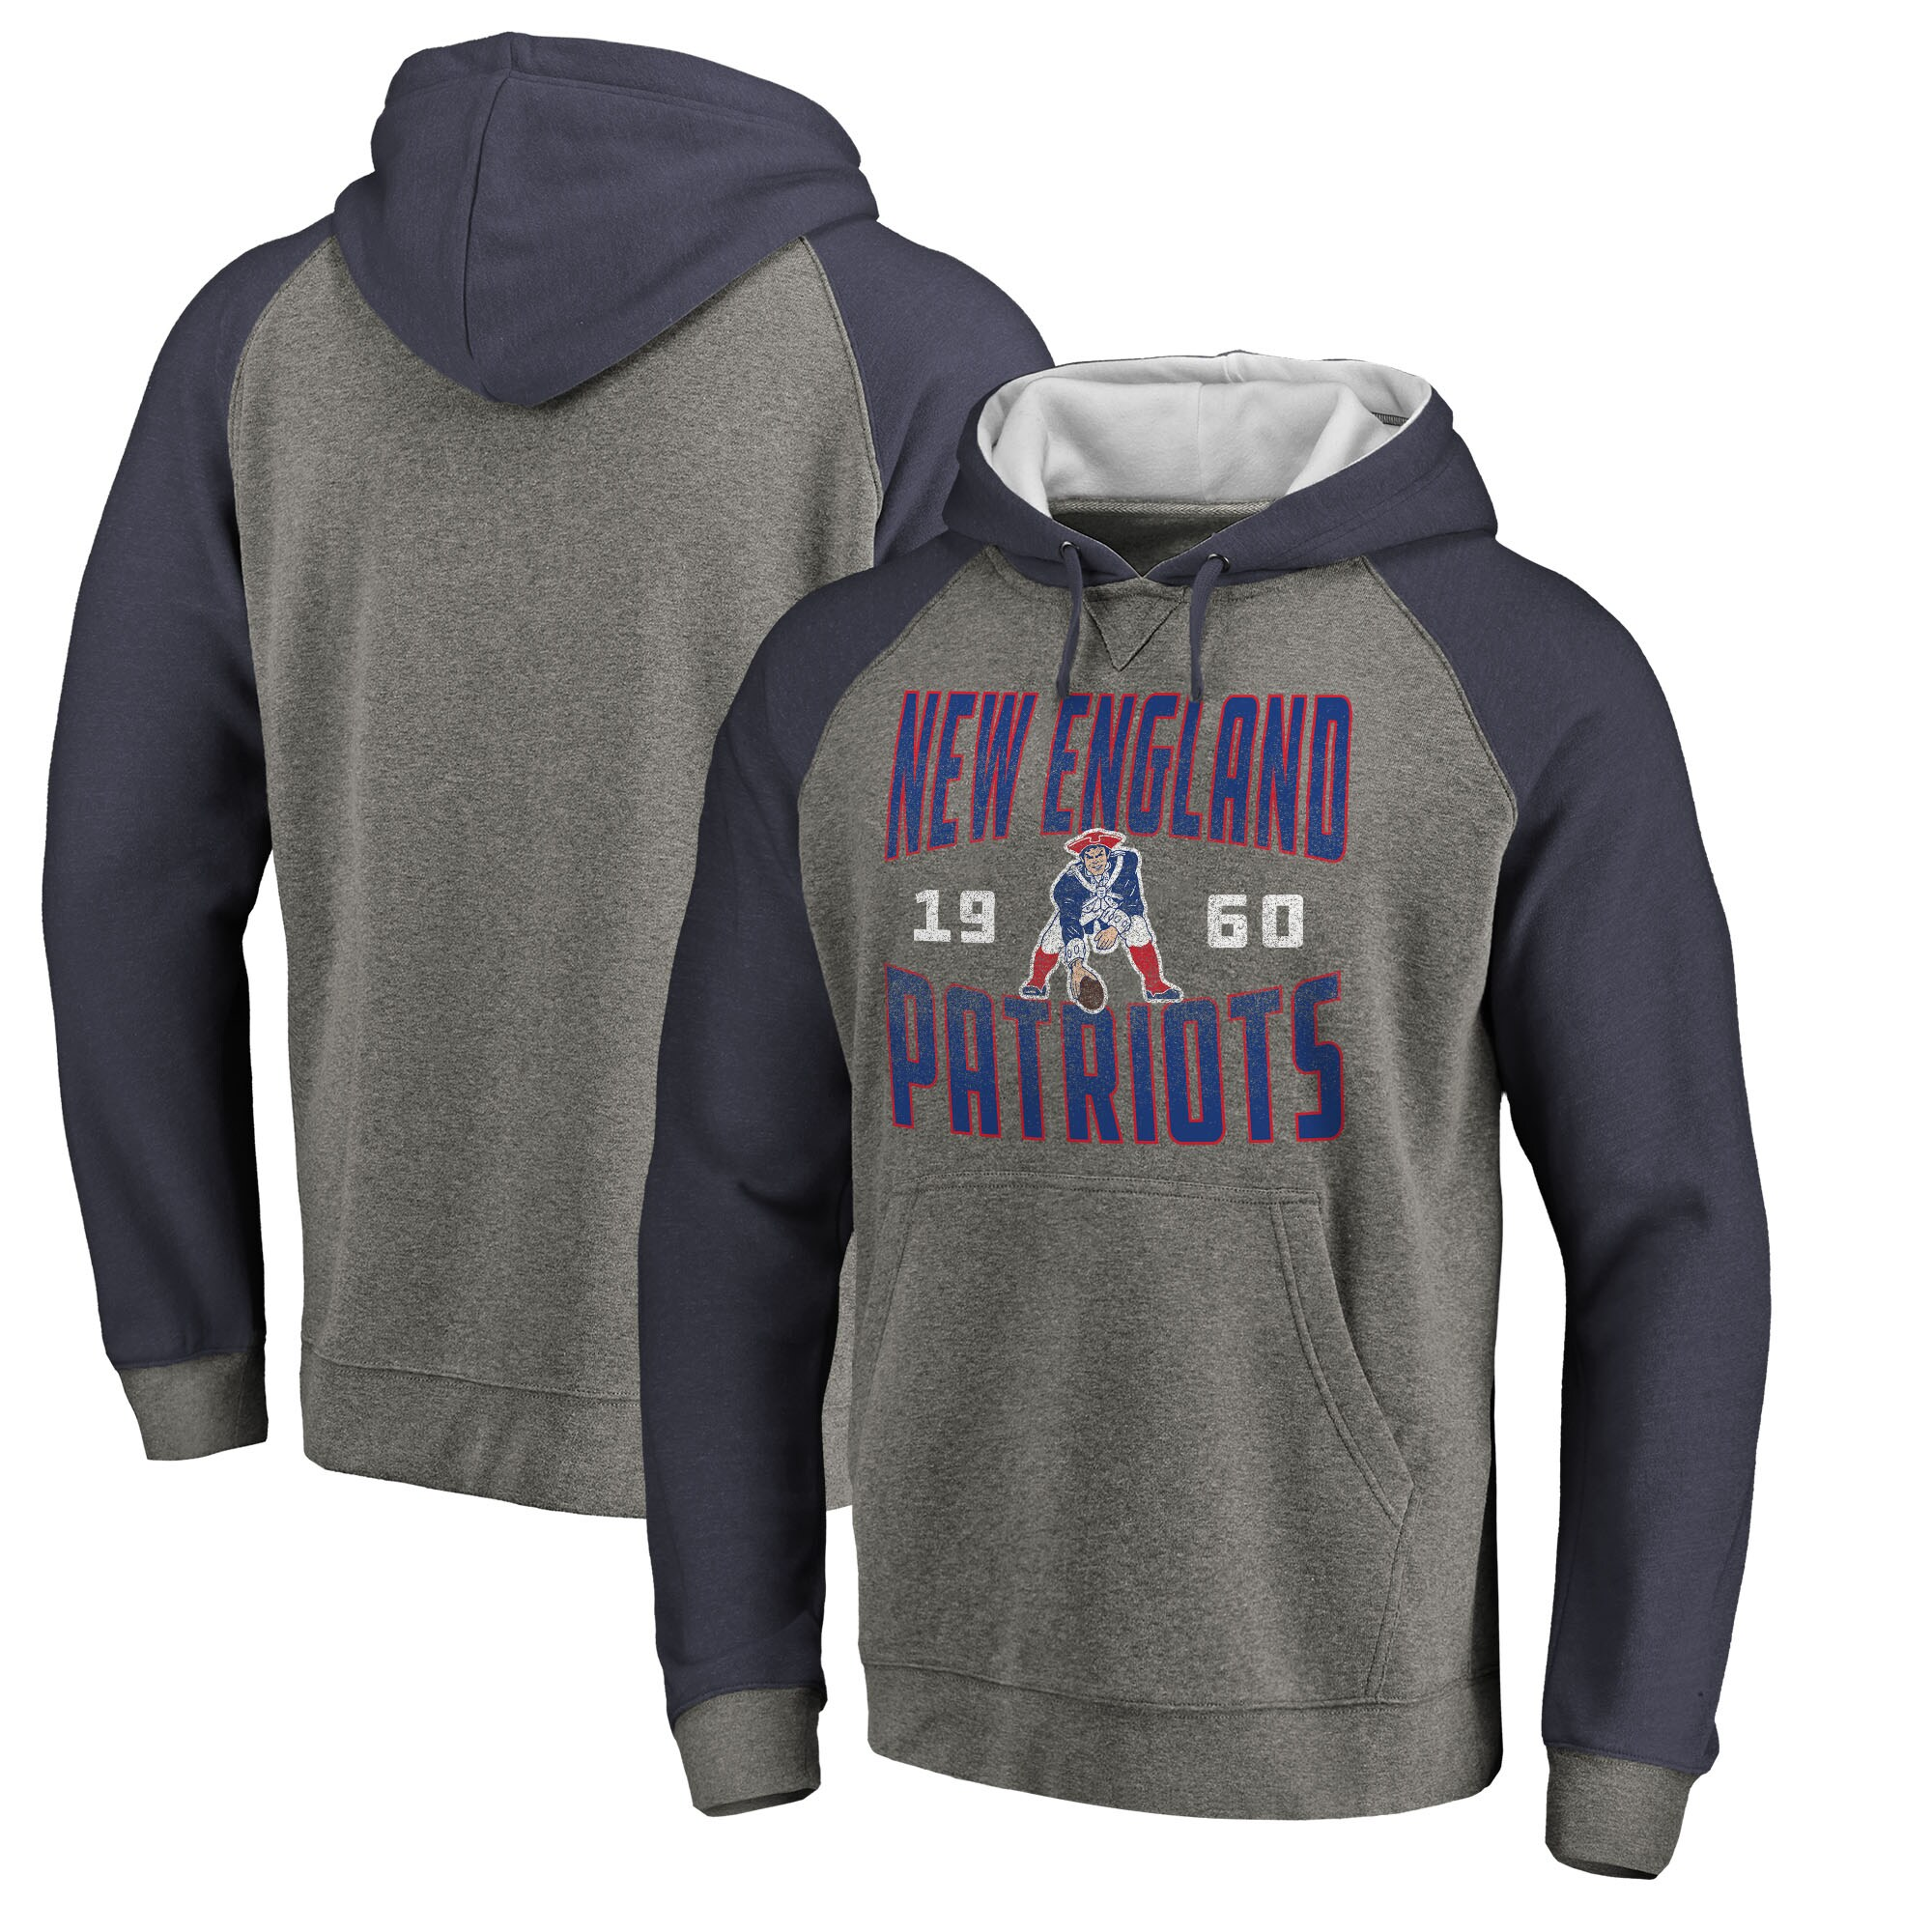 New England Patriots NFL Pro Line by Fanatics Branded Timeless Collection Antique Stack Tri-Blend Raglan Pullover Hoodie - Ash